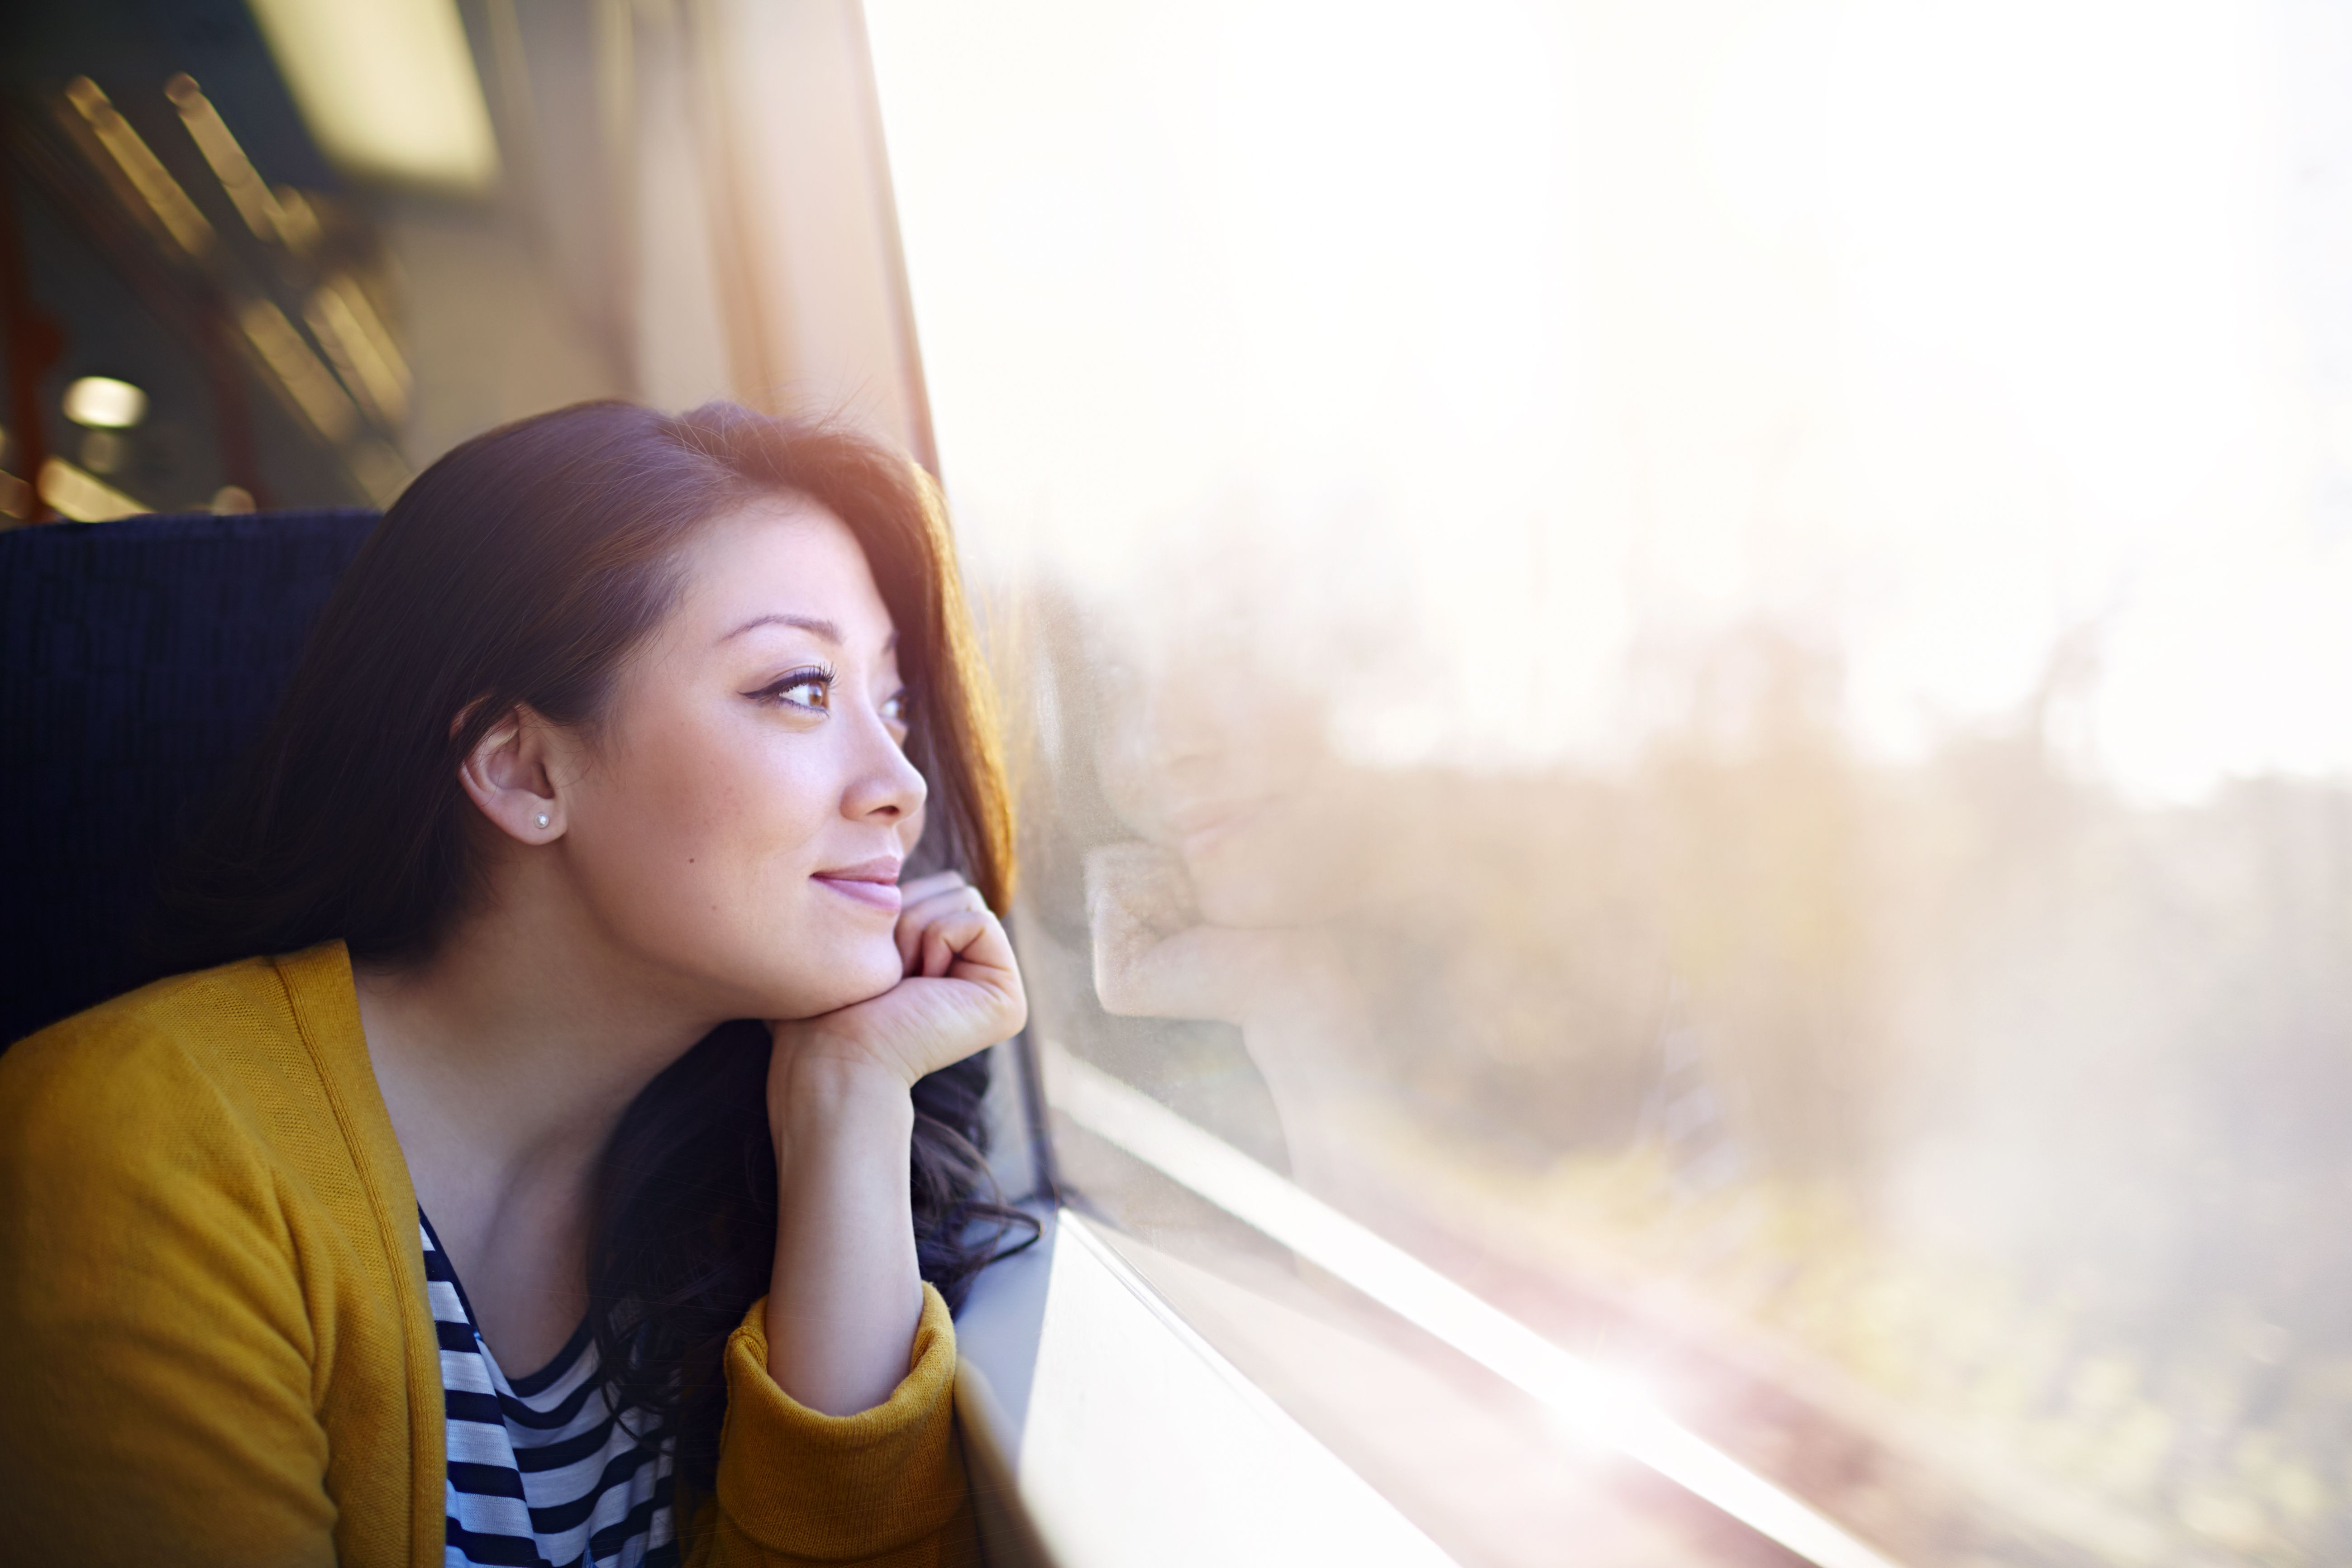 Smiling woman looking out window.